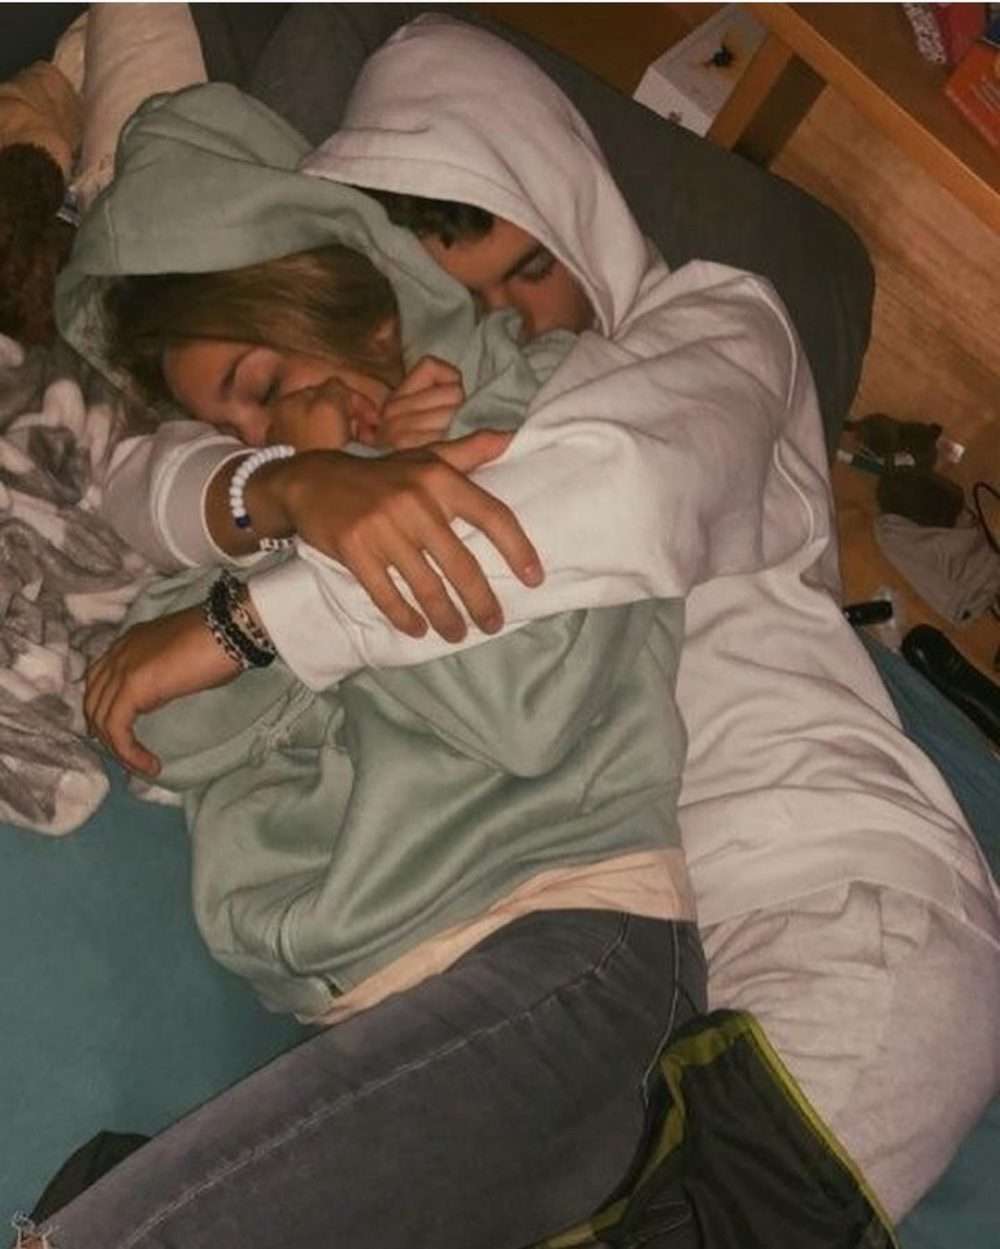 sweet couple asleep ready for a new relationship